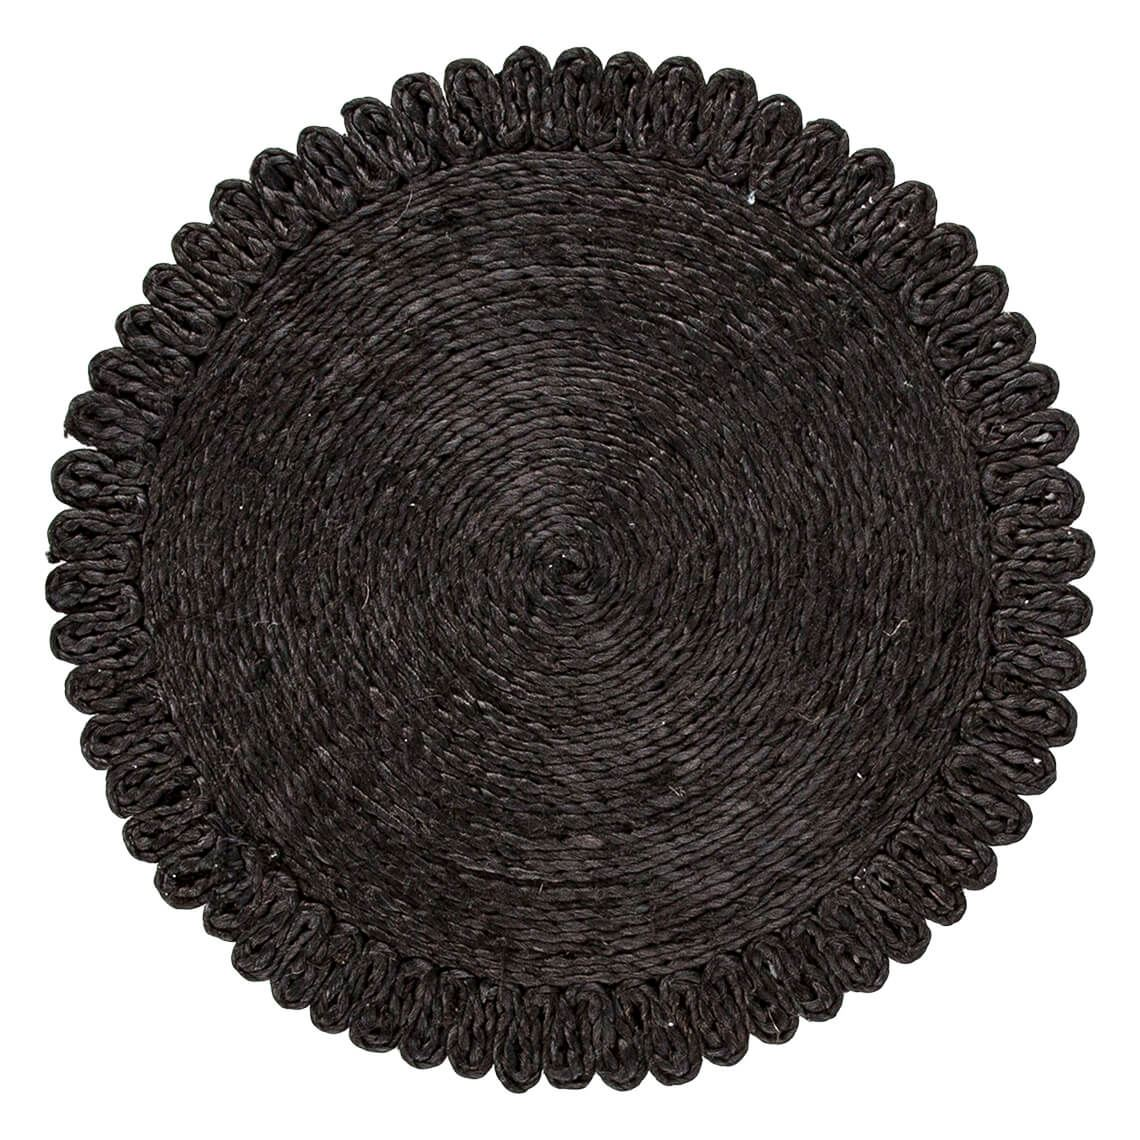 Azina Placemat Size W 35cm x D 35cm x H 1cm in Black Freedom by Freedom, a Placemats for sale on Style Sourcebook